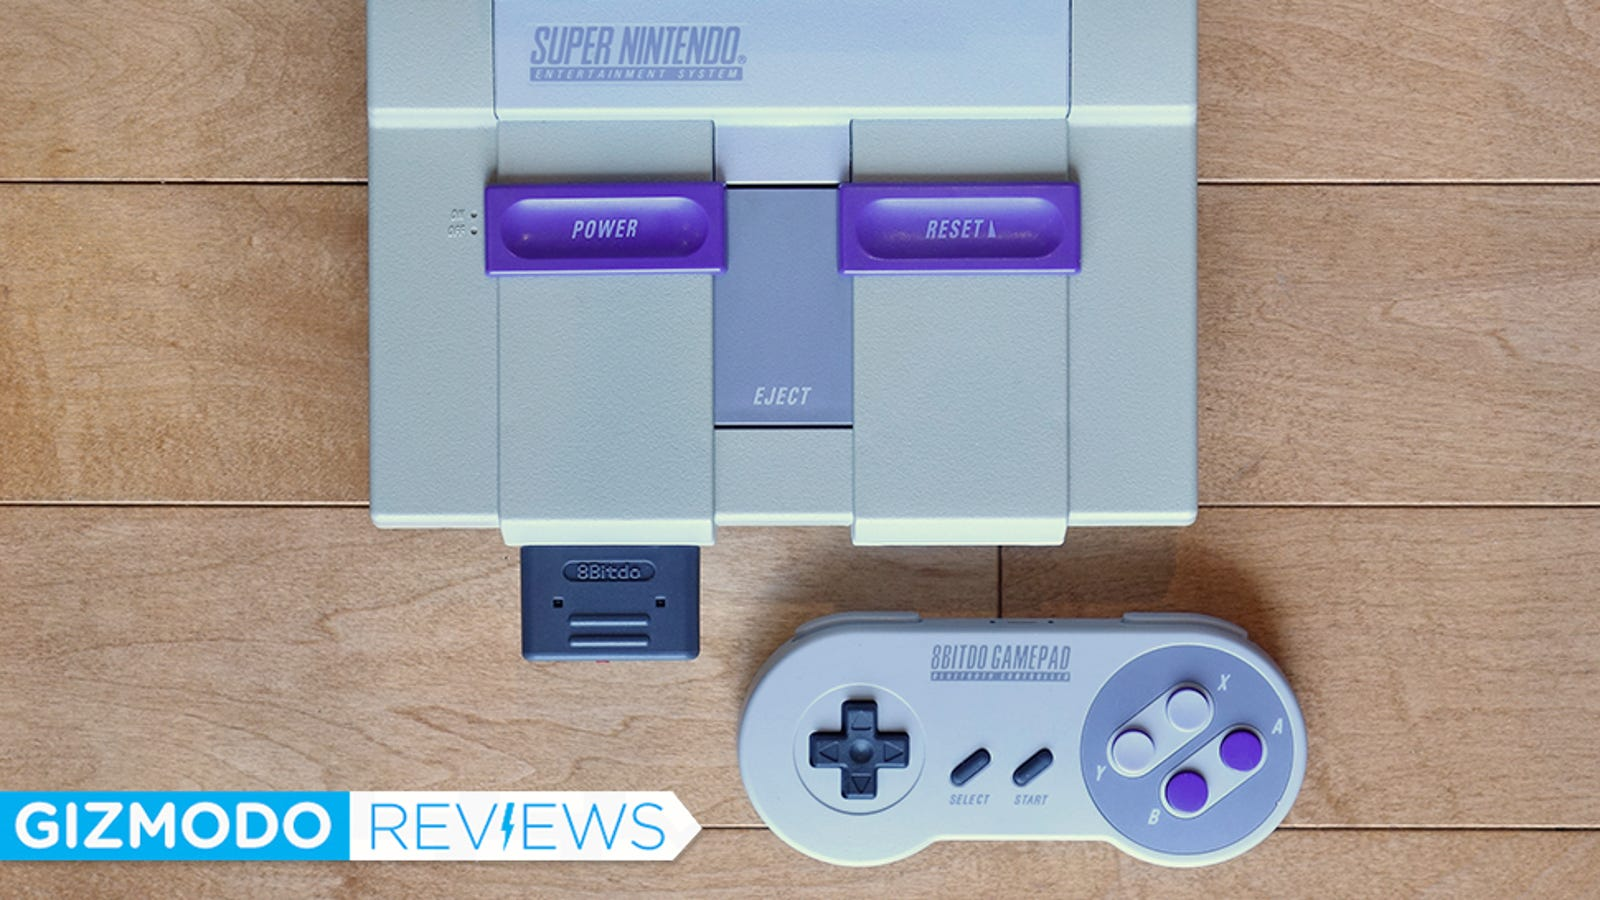 The Super Nintendo Retro Receiver Is a Painless Wireless